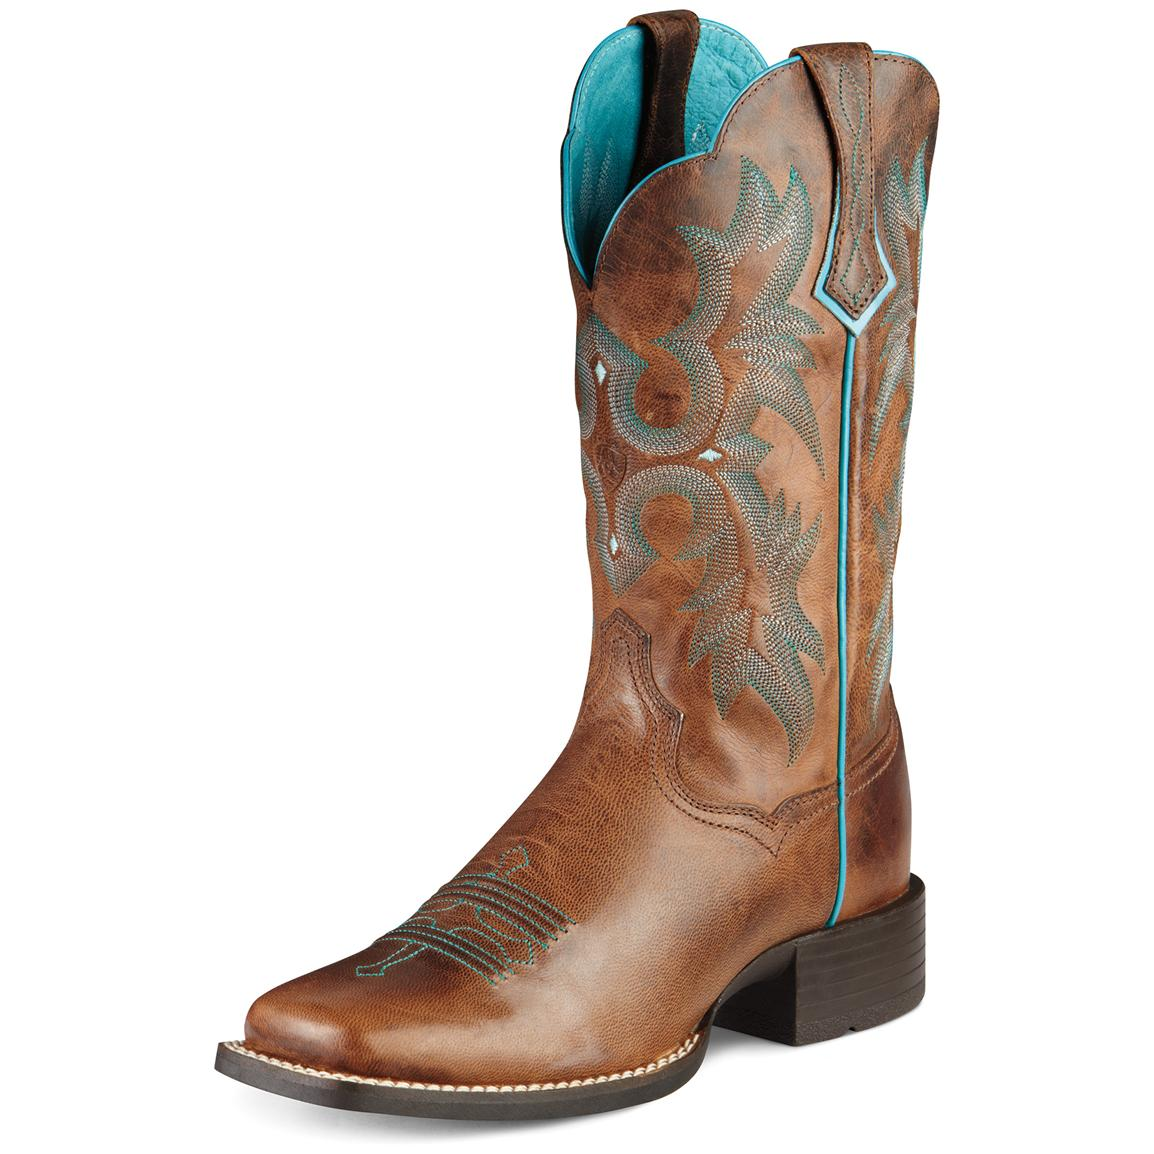 Brown Cowboy Boots For Women rhEV3IL0